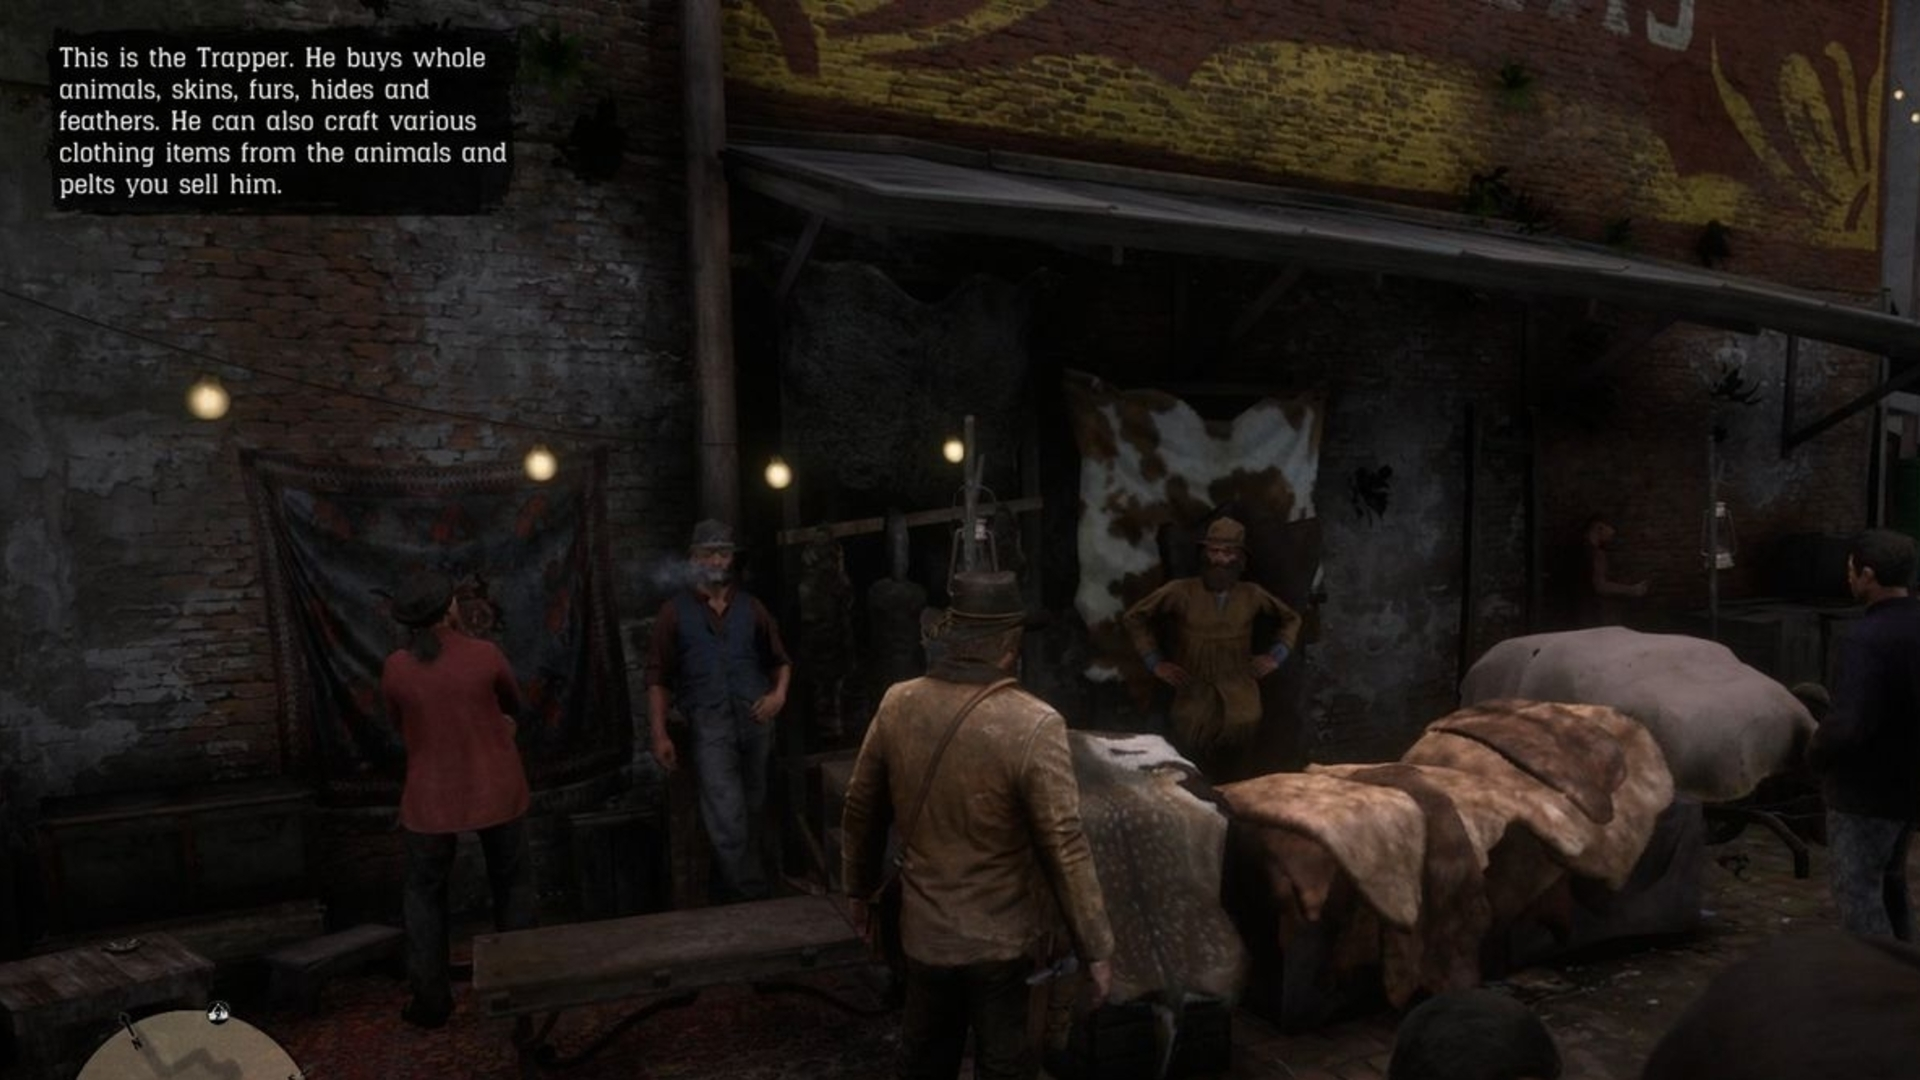 Red Dead Redemption 2 Trapper Locations Where To Find The Trapper